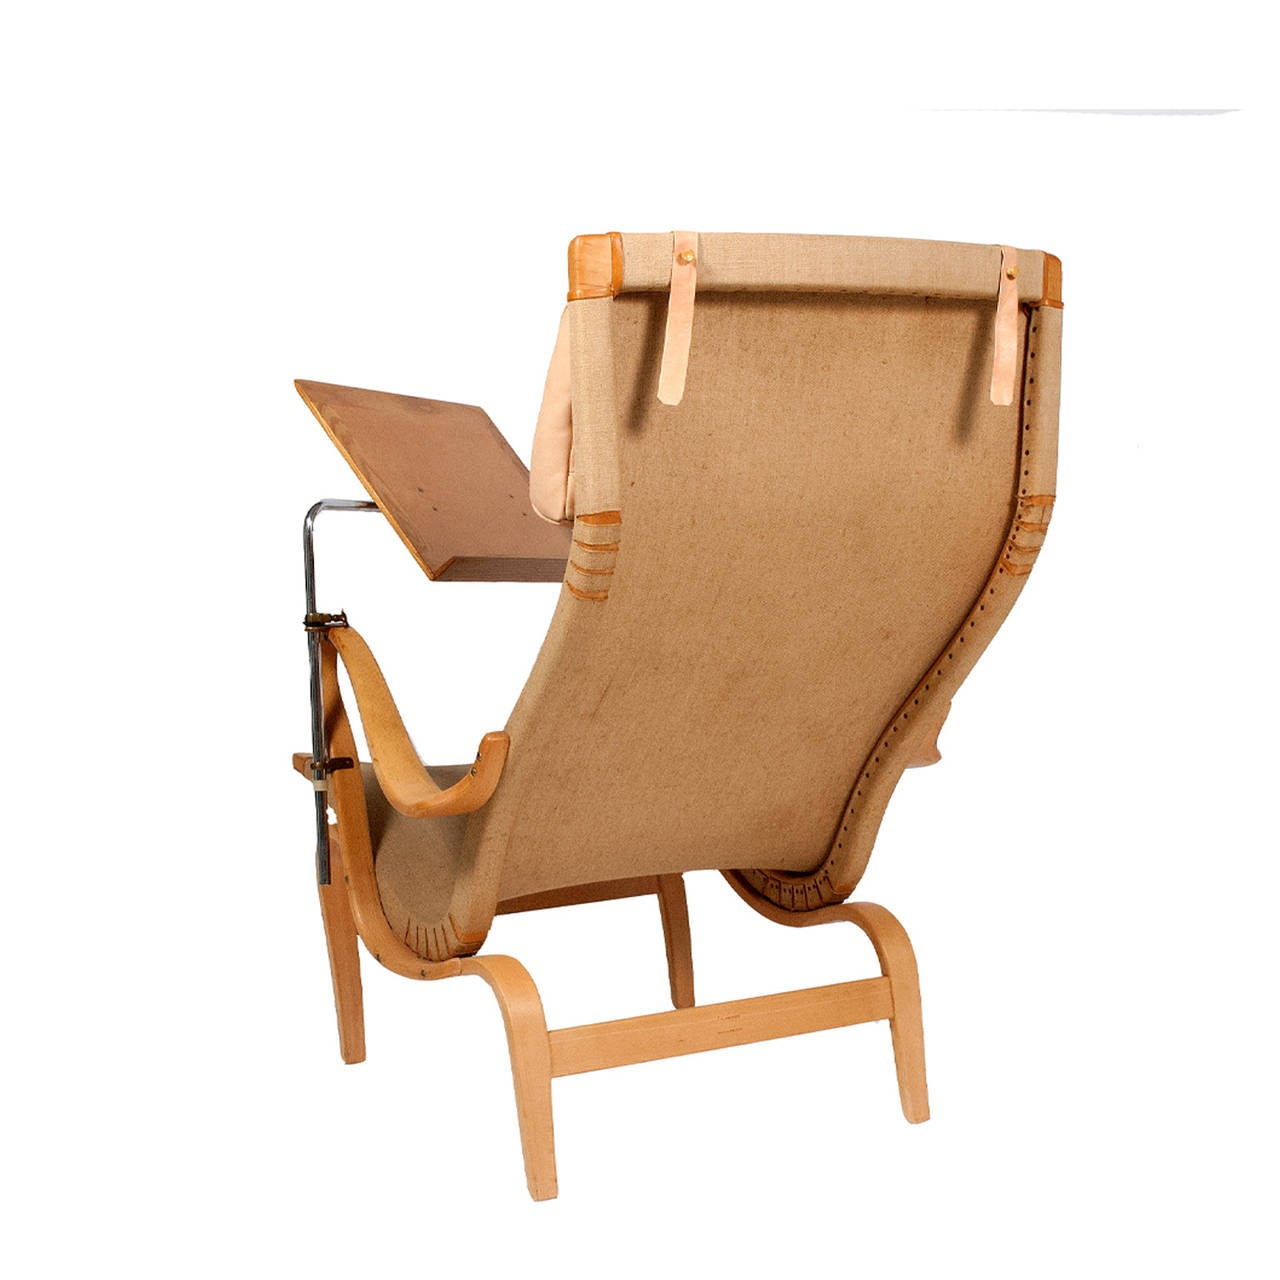 Design by Bruno Mathsson for Karl Mathsson easy chair with reading holder this chair was made in 1969 sign and dated.